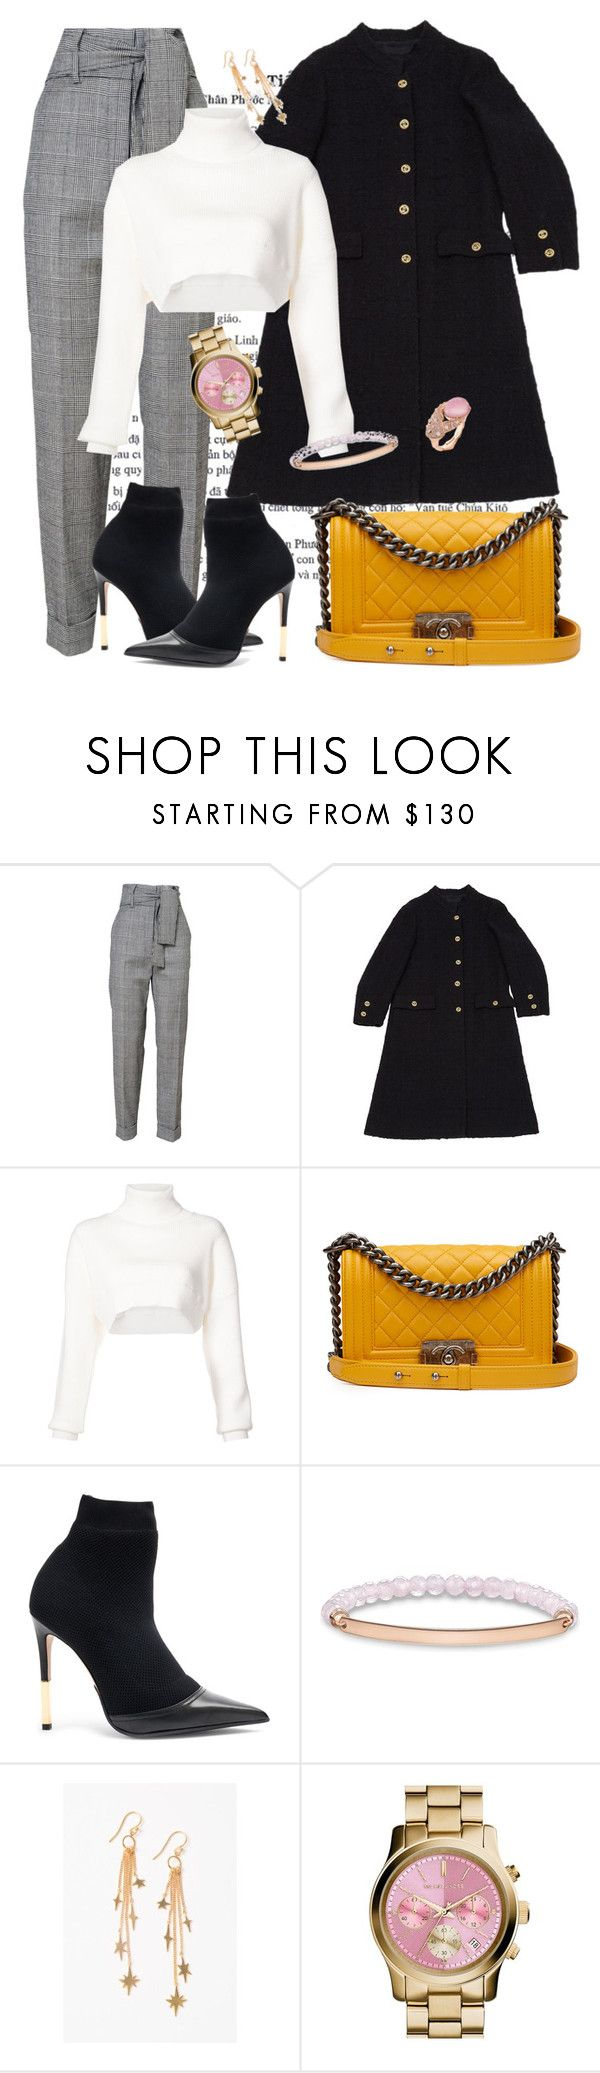 """The suit trend"" by roula-gedeon ❤ liked on Polyvore featuring Chanel, Alexandre Vauthier, Balmain, Thomas Sabo, Chan Luu and MICHAEL Michael Kors"